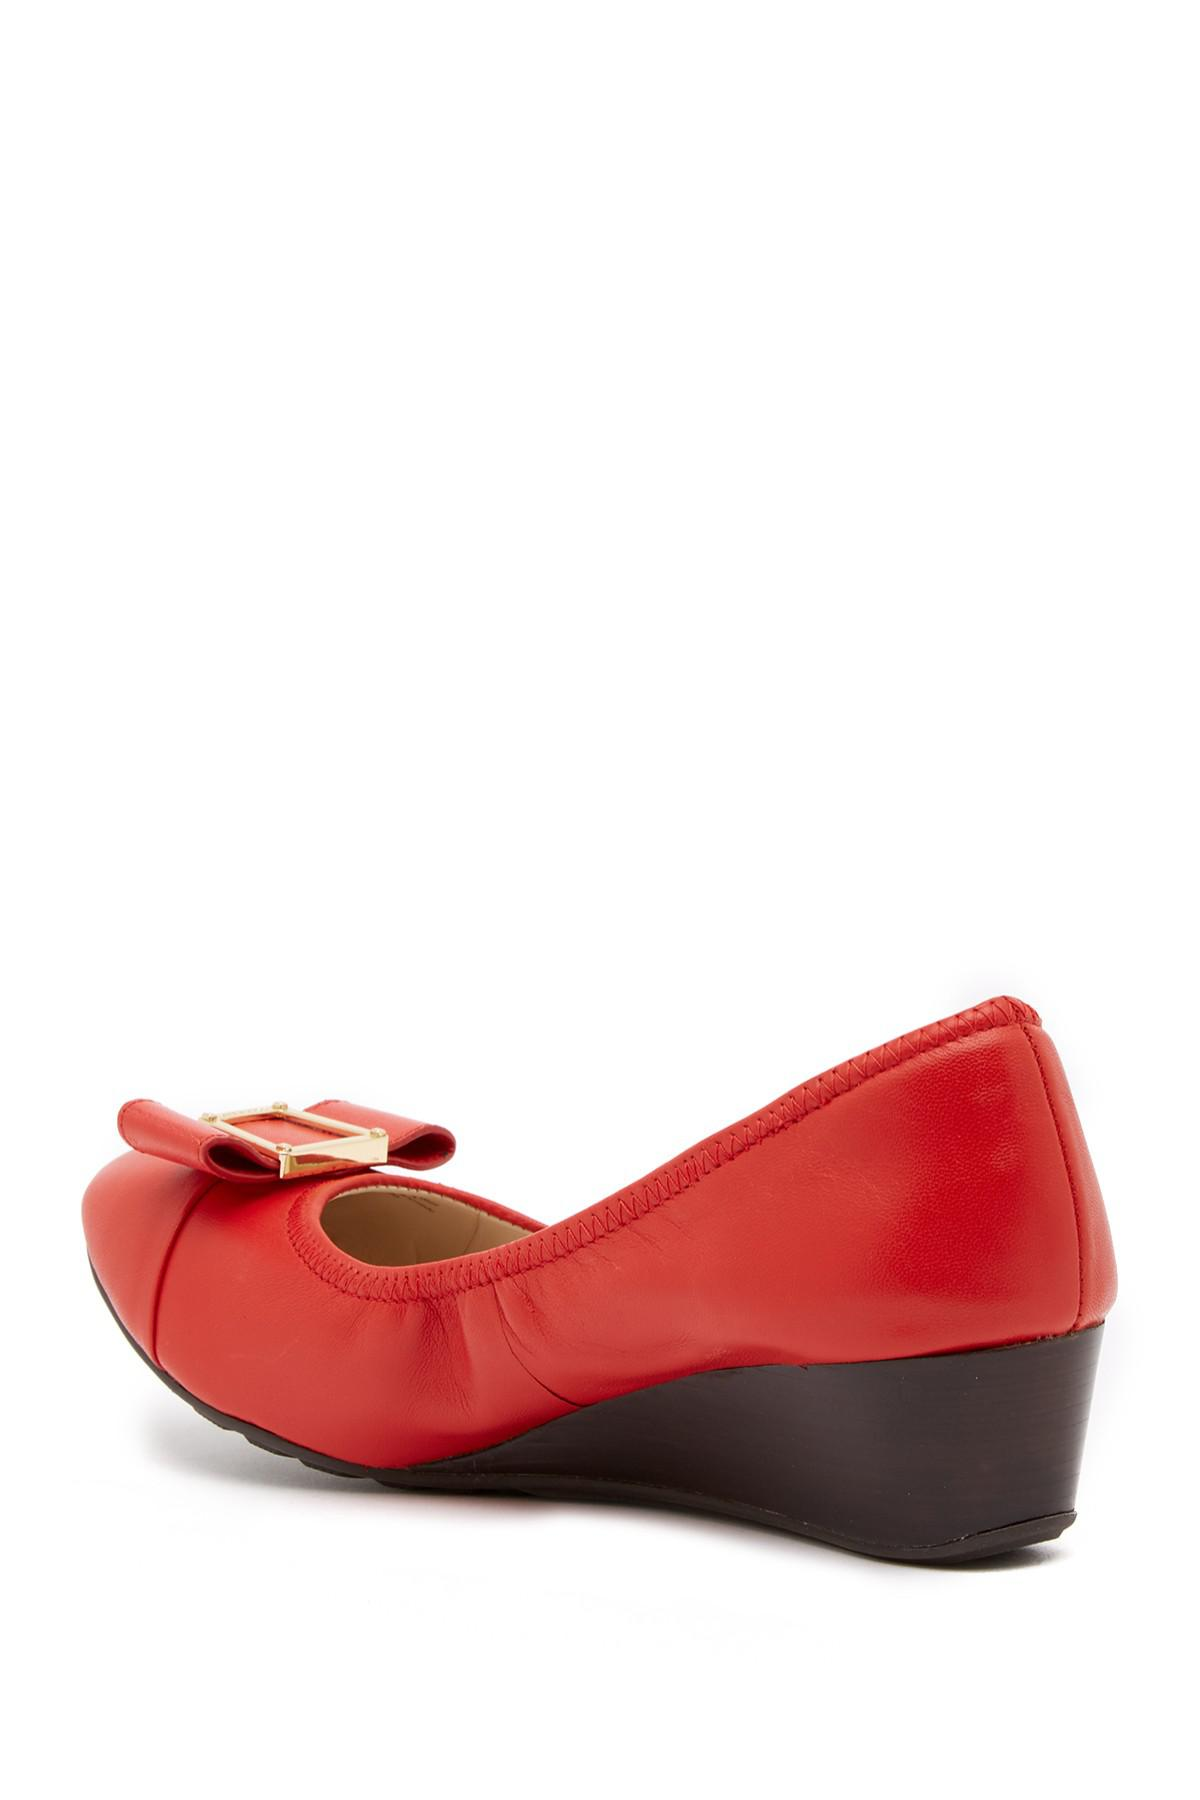 c284f8dcdfc Lyst - Cole Haan Emory Bow Wedge Pump in Red